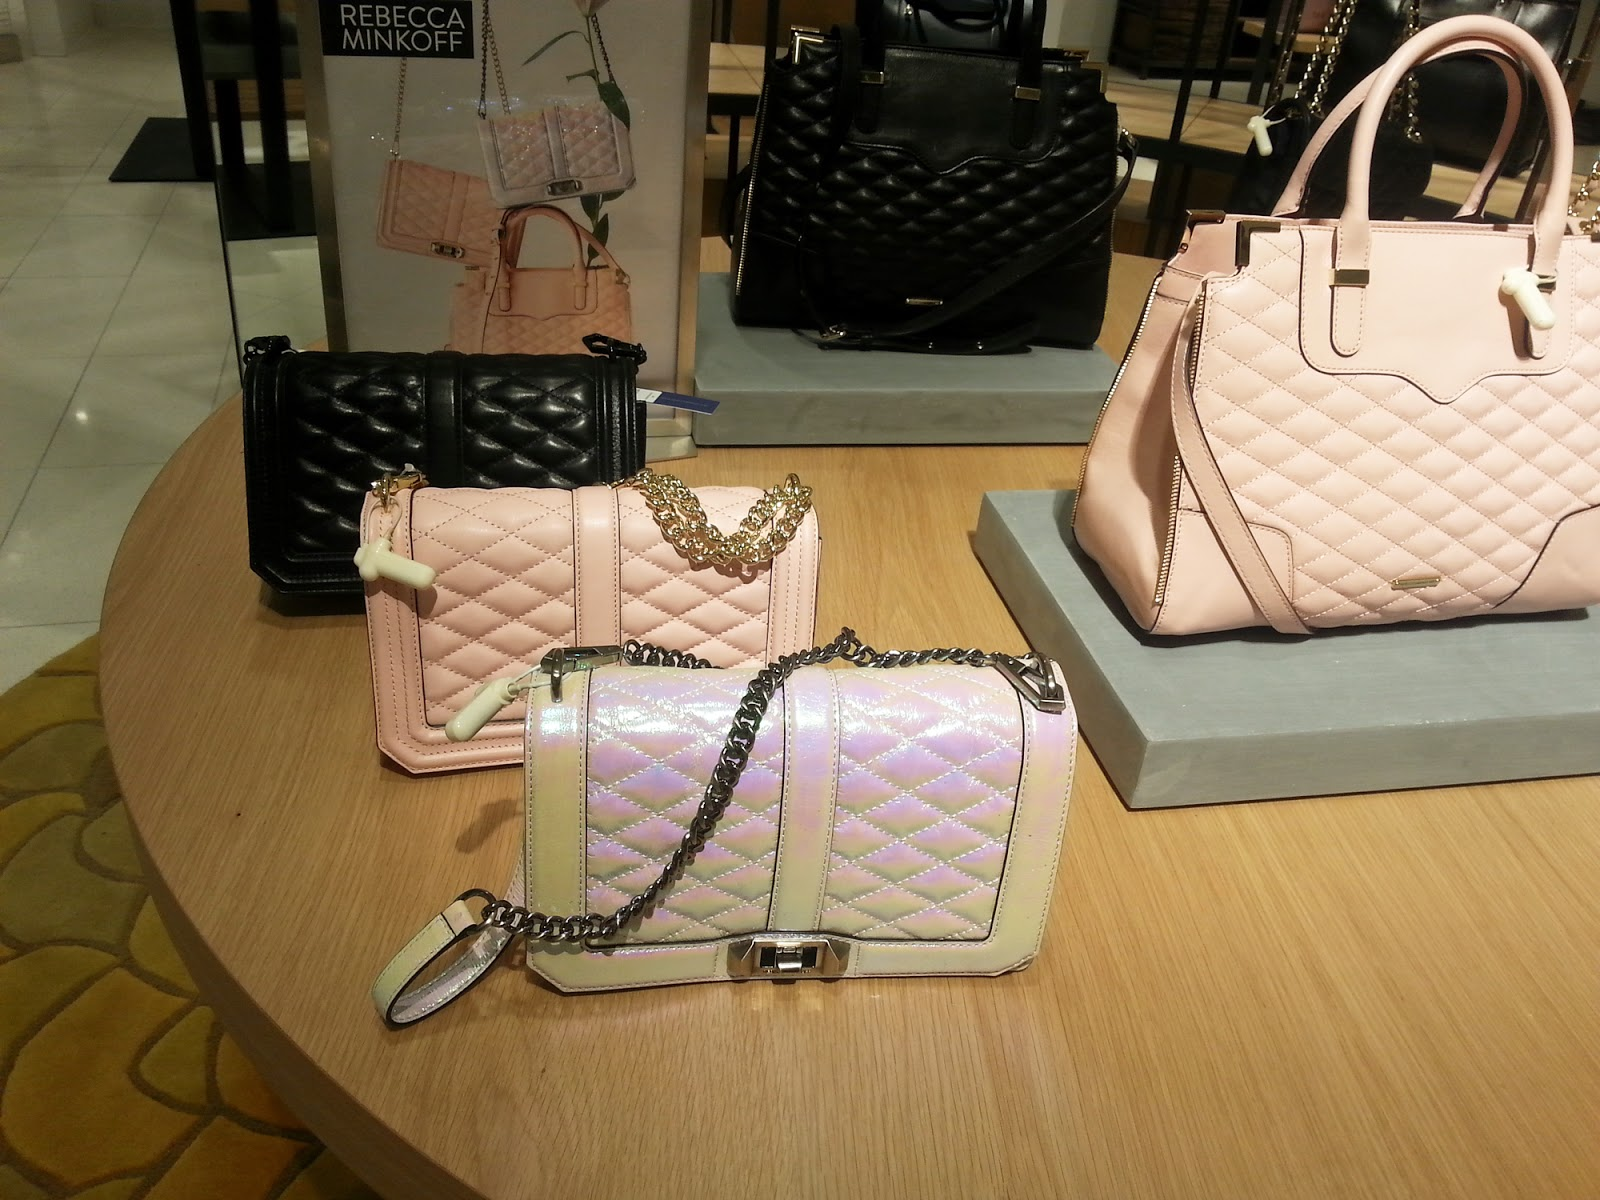 Rebecca Minkoff Love bags in black, pink, and opal.